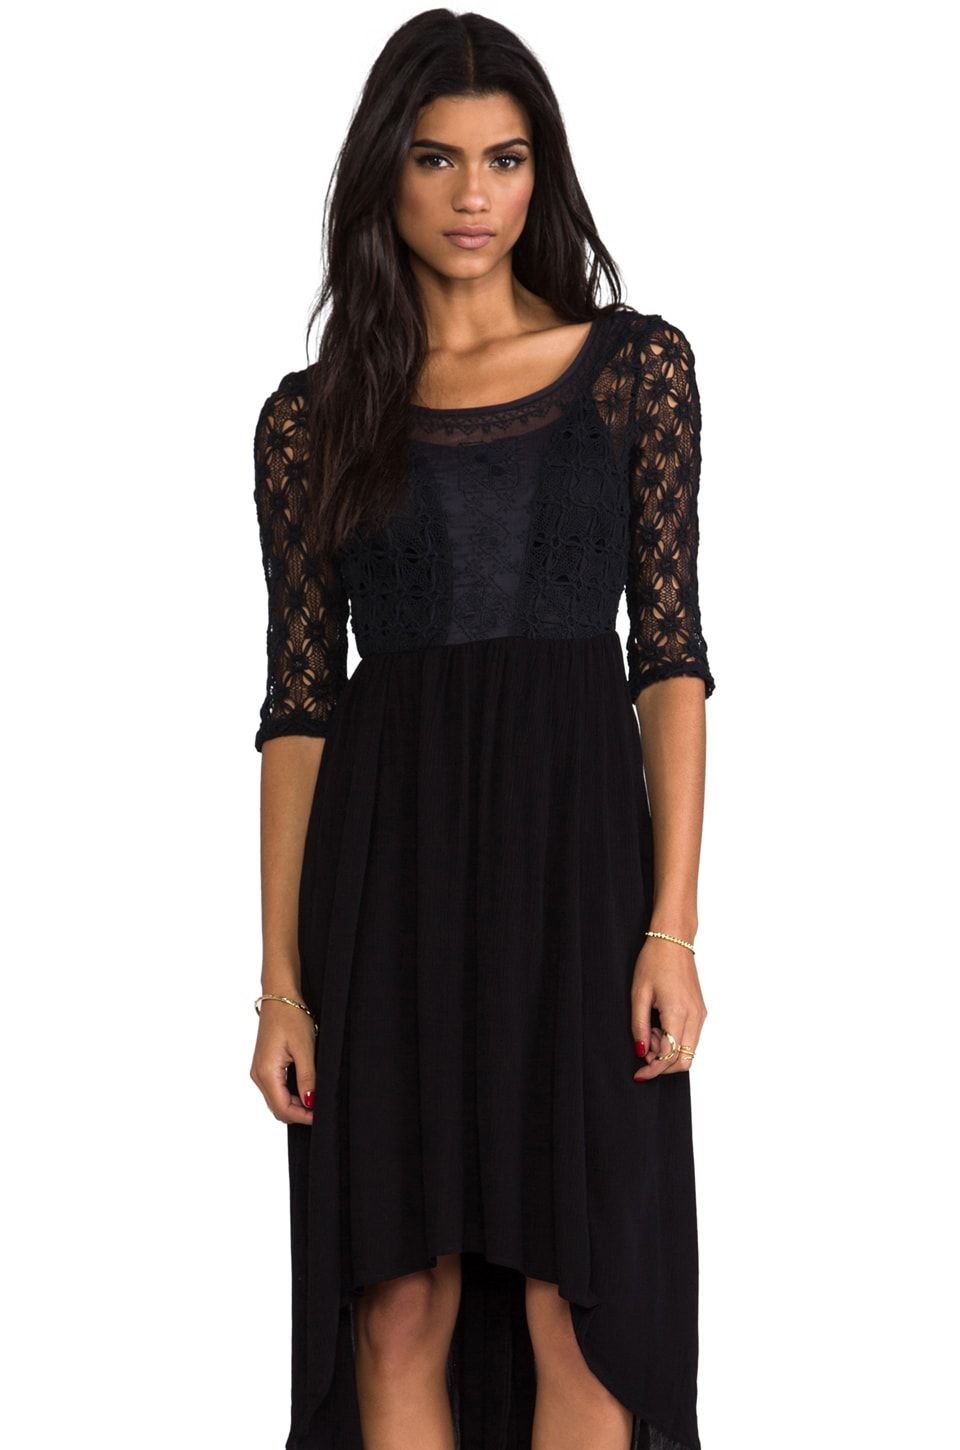 Free People Lonesome Dove Dress in Black